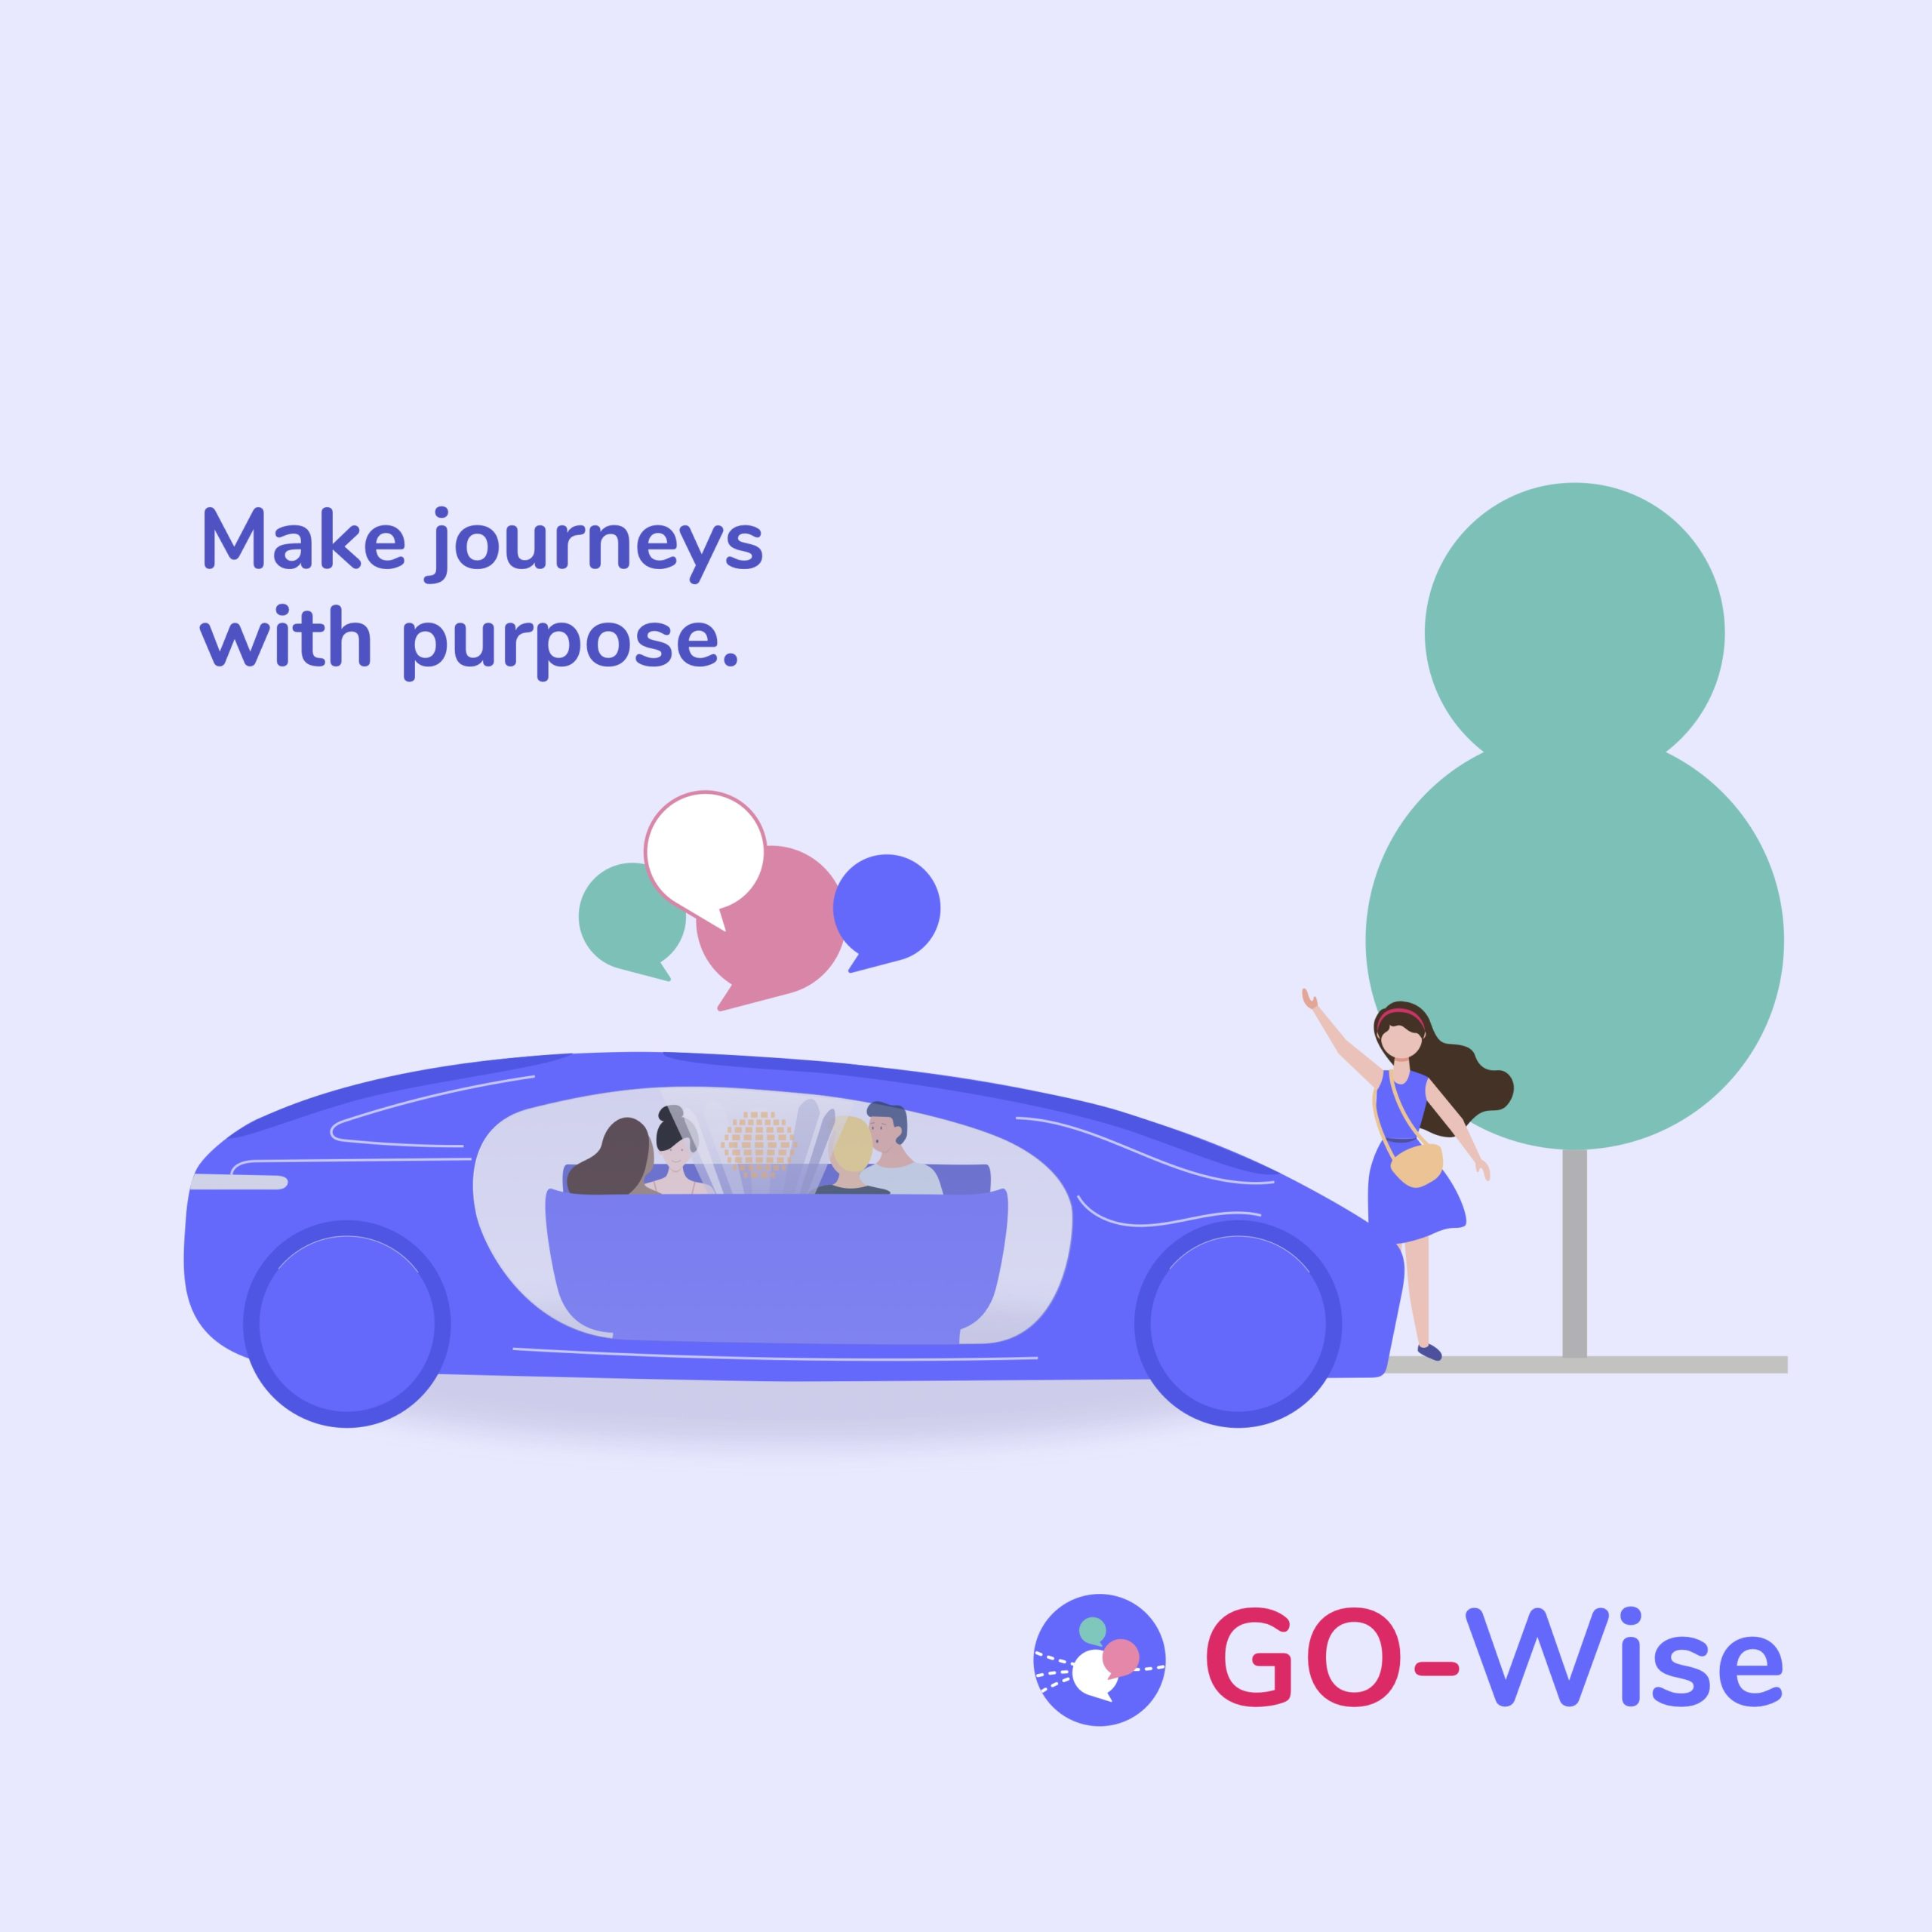 GO-Wise, GO-Ford